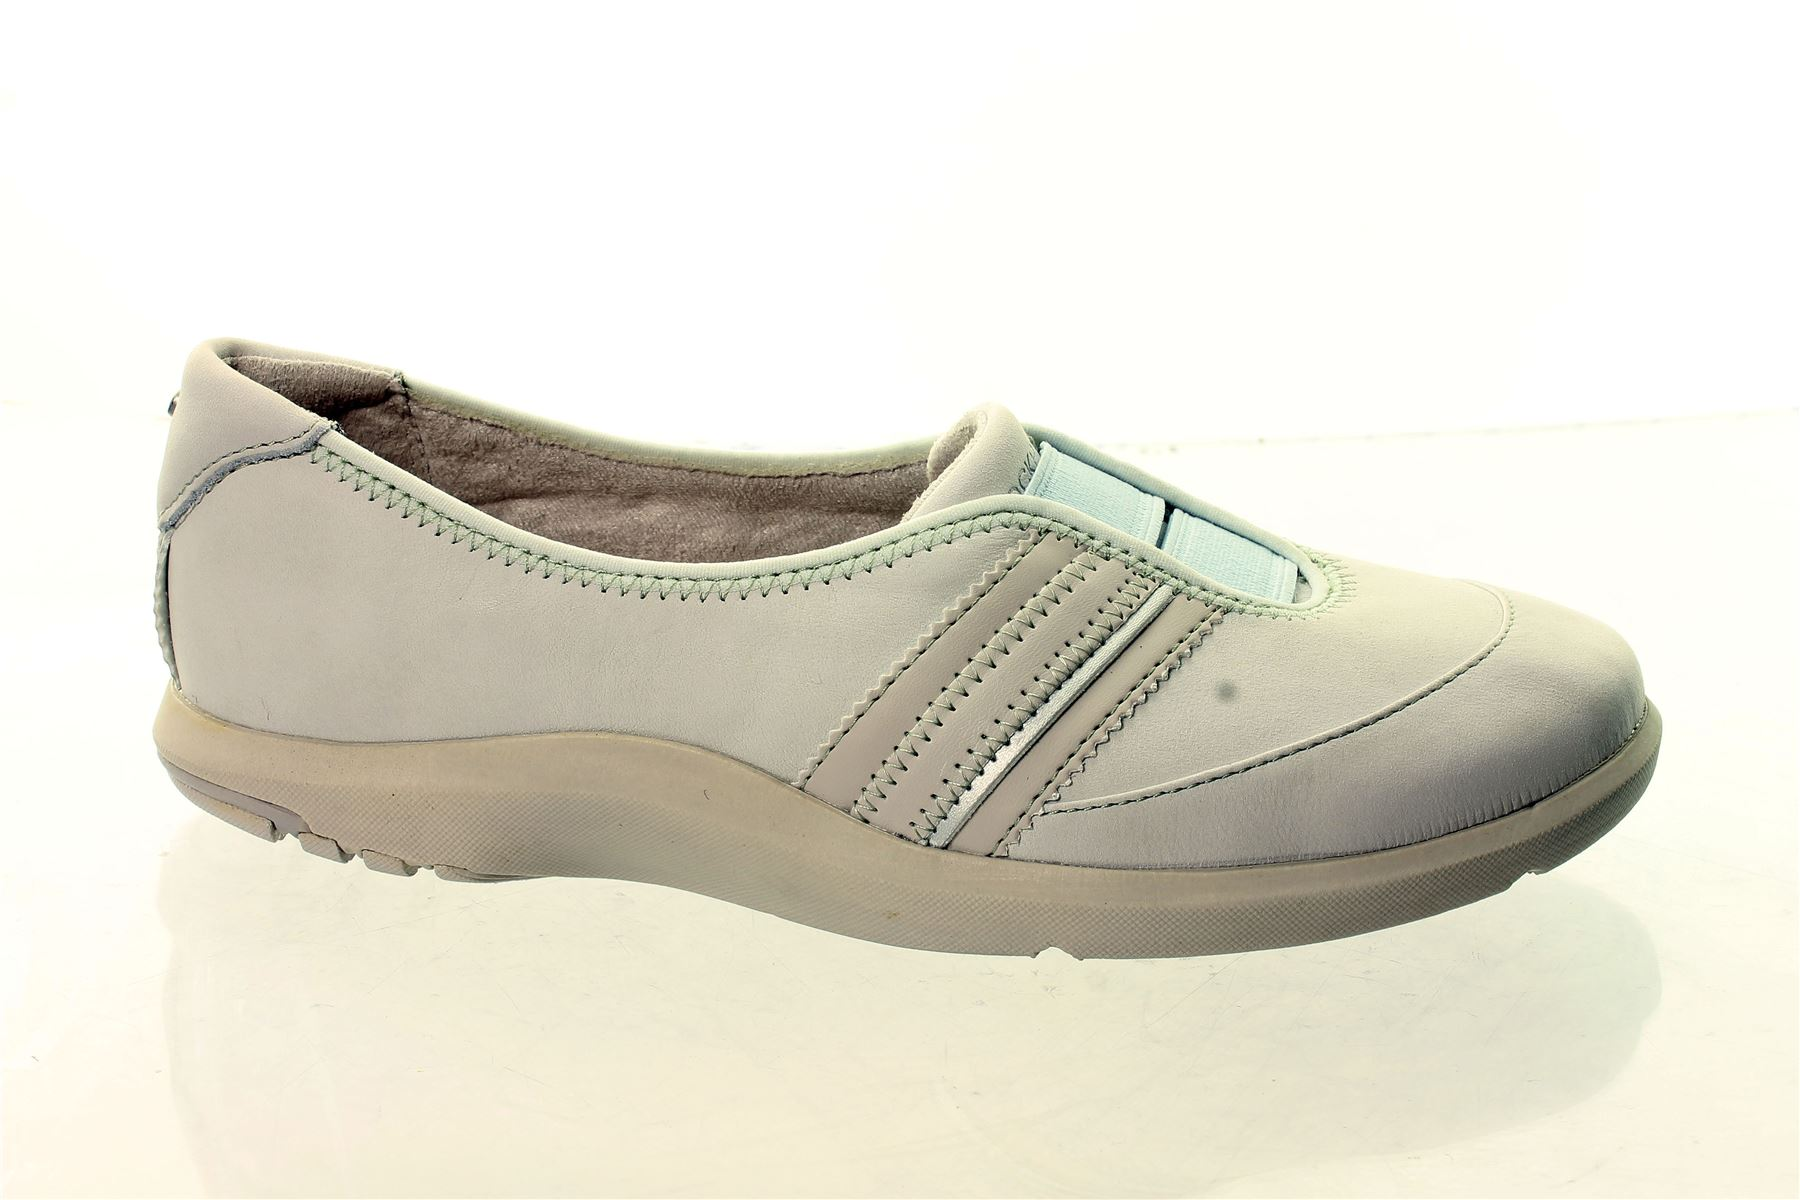 Cobb Hill Shoes. Cobb Hill shoes combine today's fashion with all-day comfort. As part of the New Balance family, Cobb Hill styles are available in a wide range of sizes and widths.